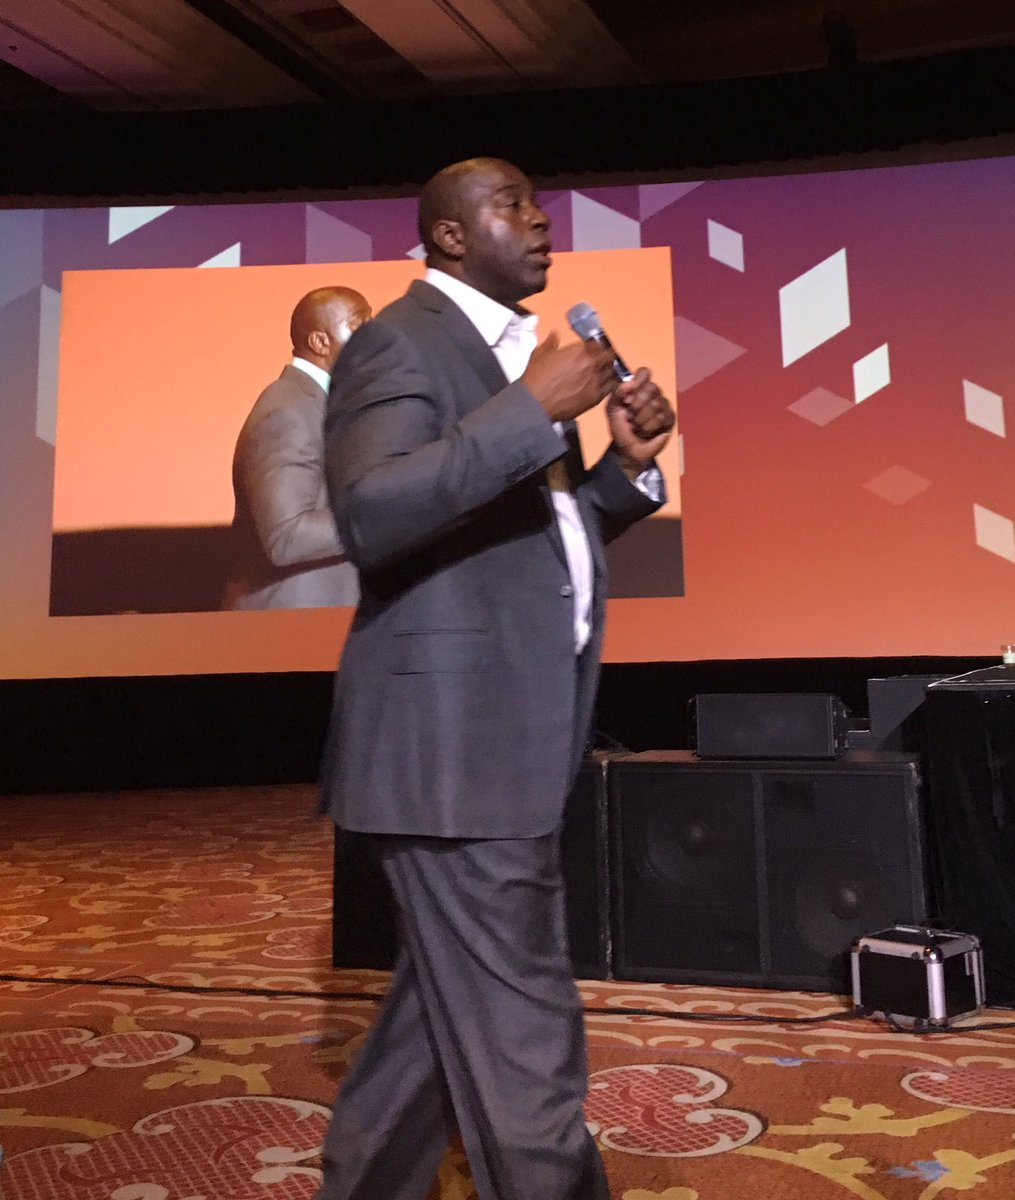 emjean: 'You can do good and do well' re: giving back - Magic Johnson #magentoimagine https://t.co/7orHVvUtMF